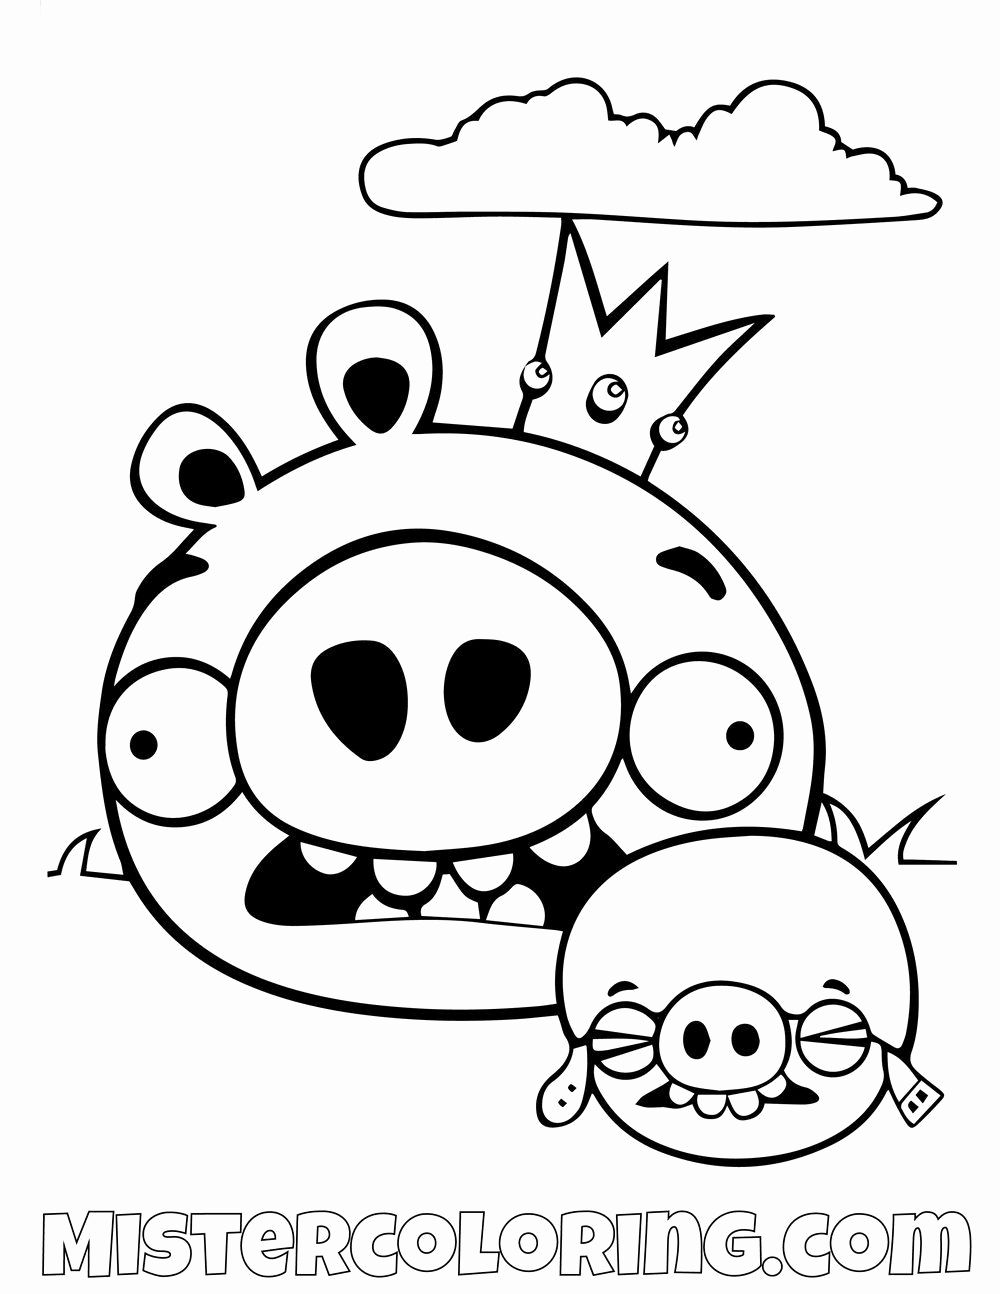 Angry Birds Coloring Book Inspirational King Pig Angry Birds Coloring Pages In 2020 Bird Coloring Pages Coloring Books Coloring Pages